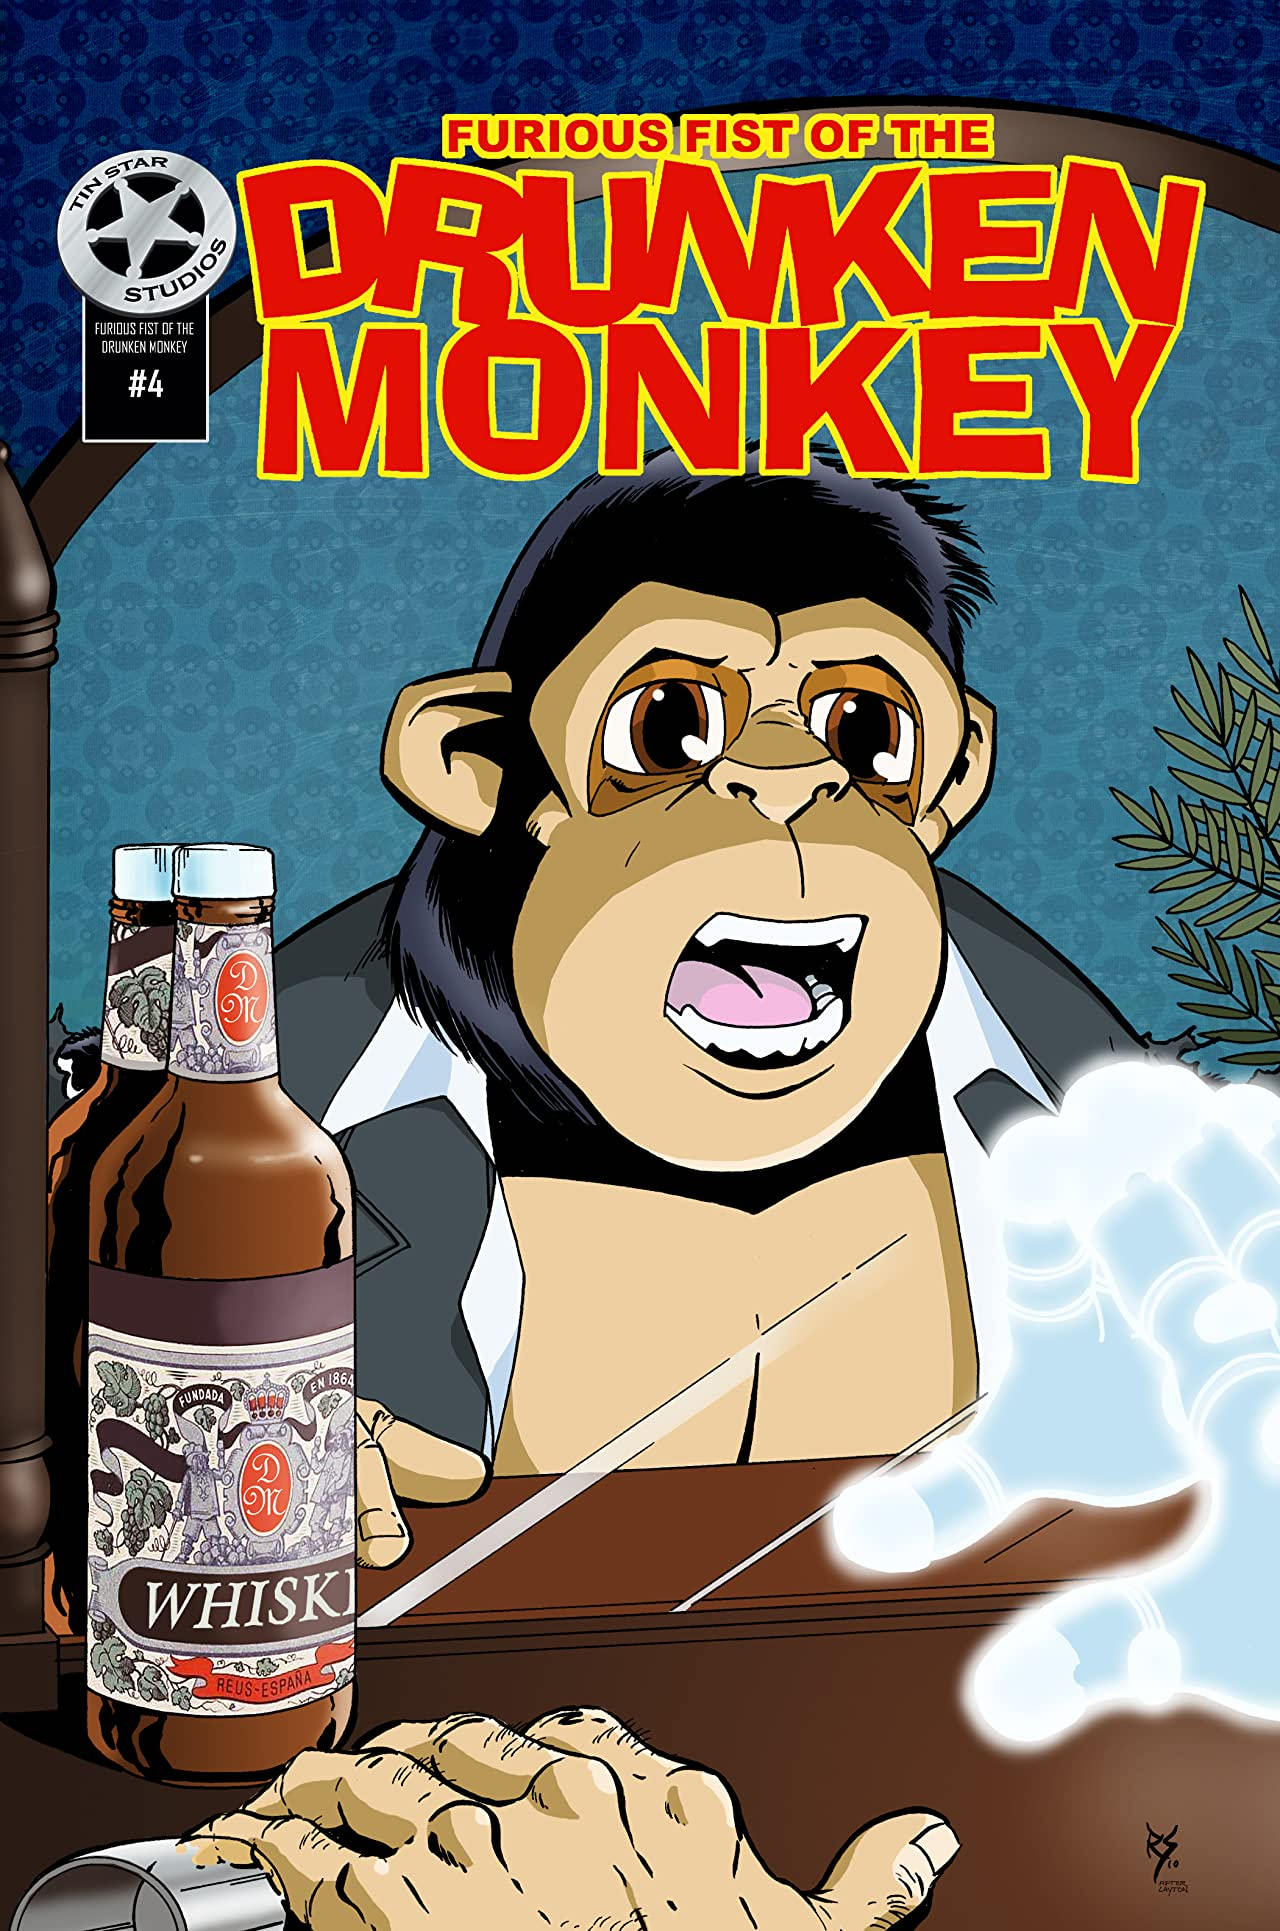 Furious Fist of the Drunken Monkey #4